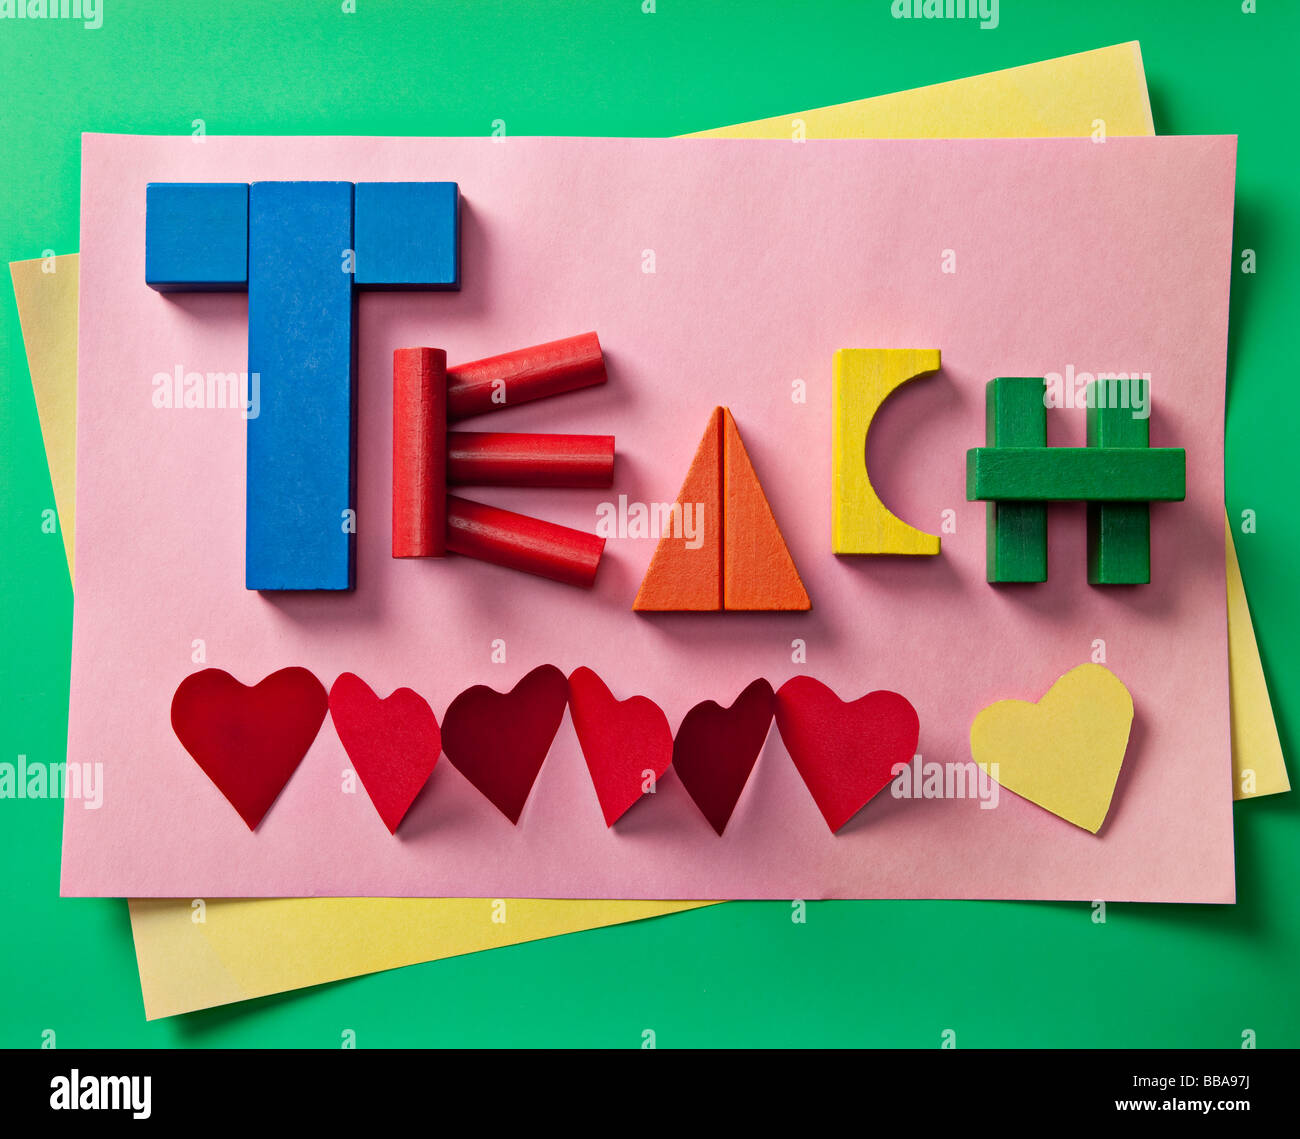 colorful blocks spelling the word teach - Stock Image